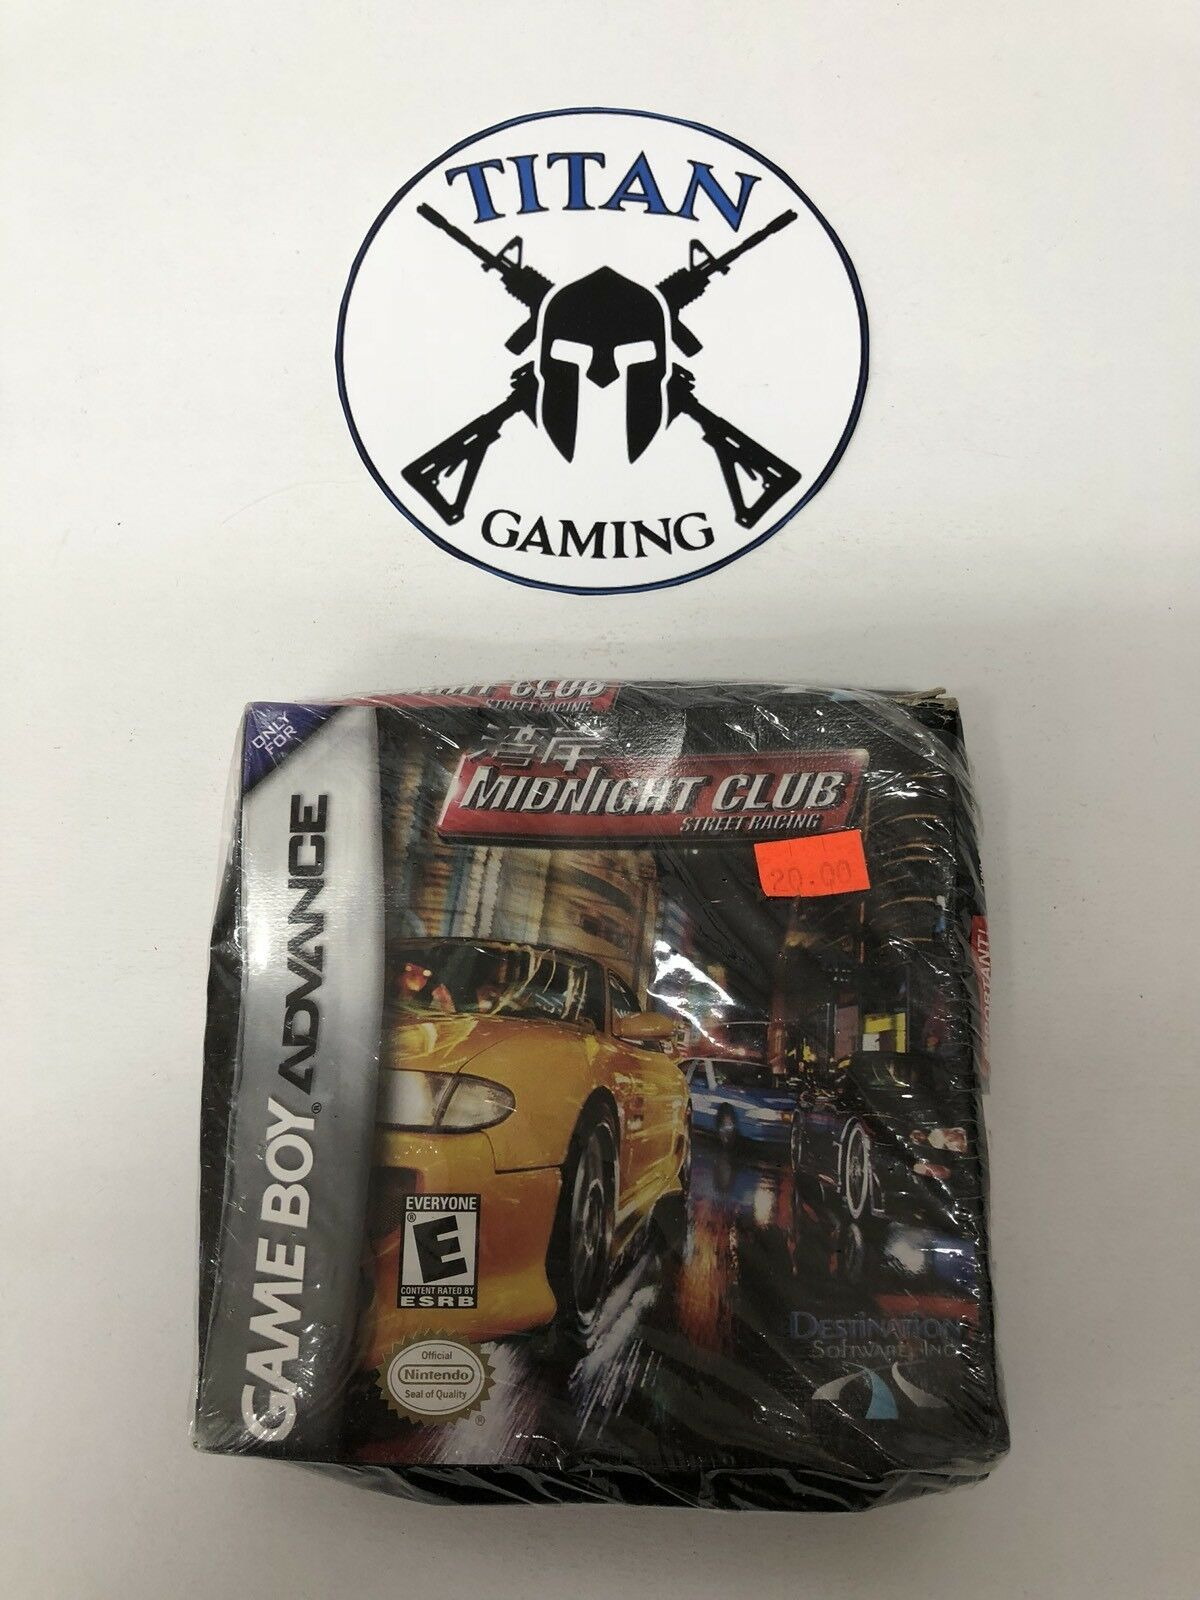 Midnight Club: Street Racing (Nintendo Game Boy Advance, 2001)